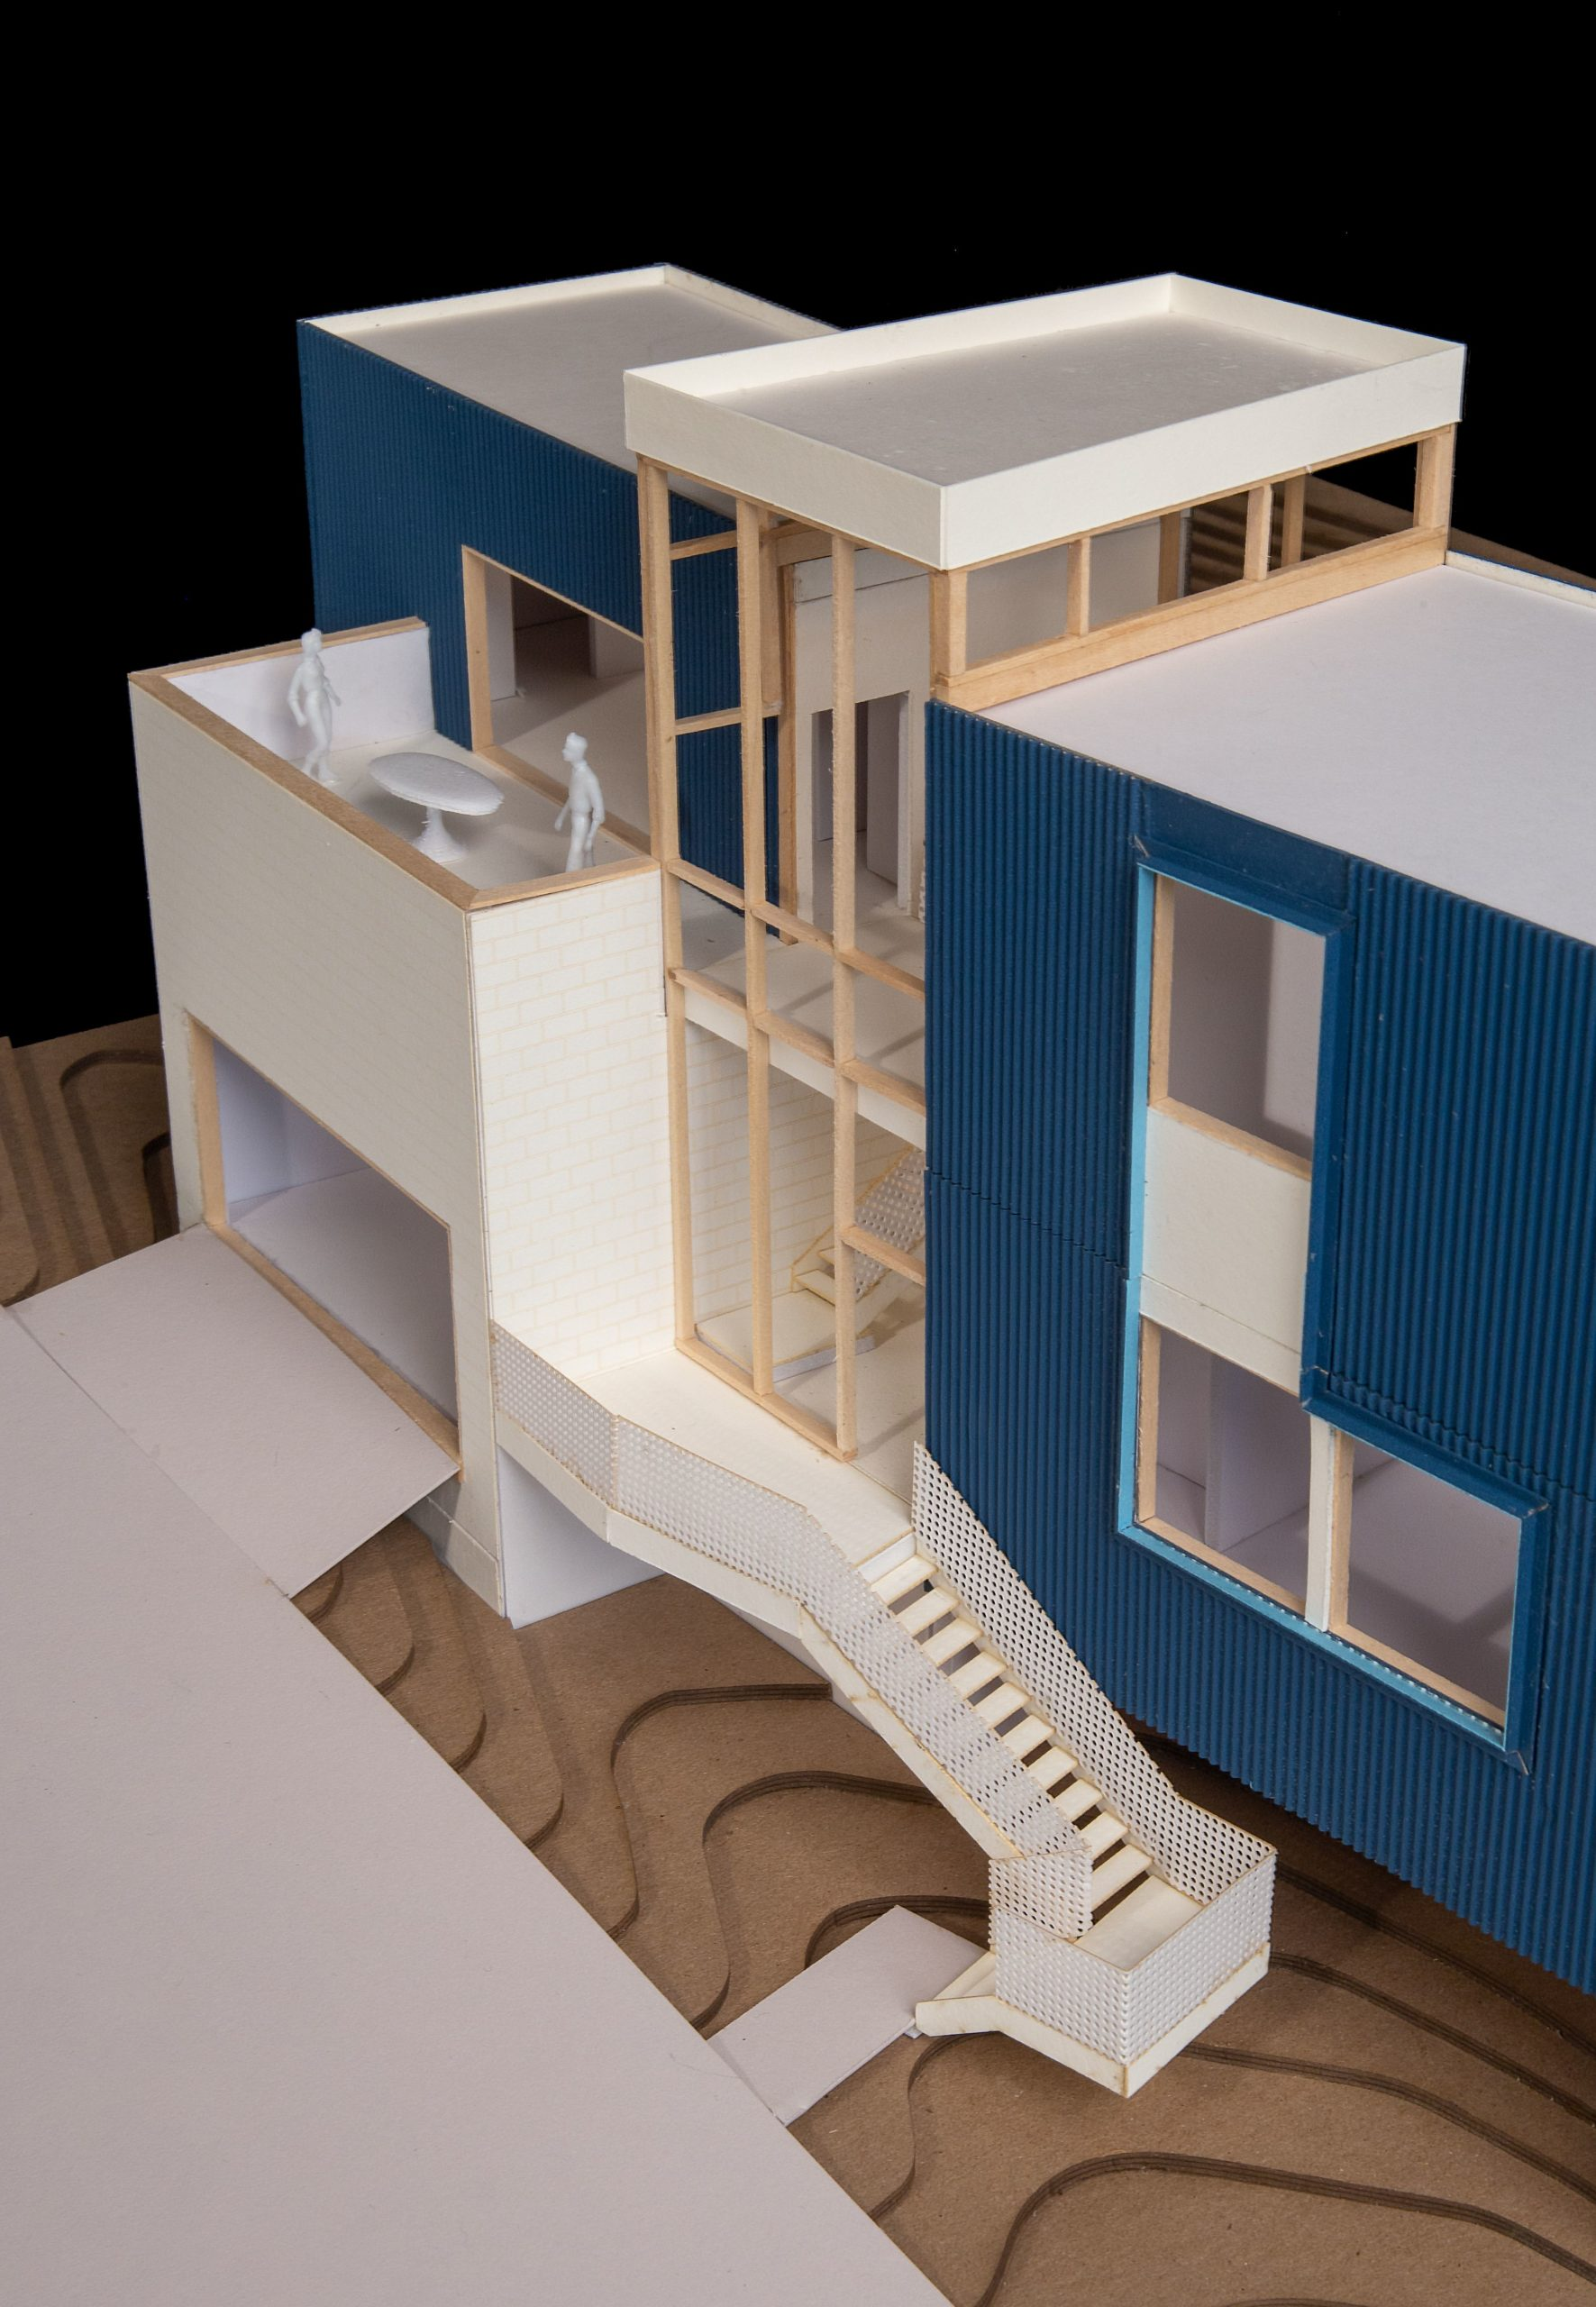 #architecturemodel of a prefabricated home